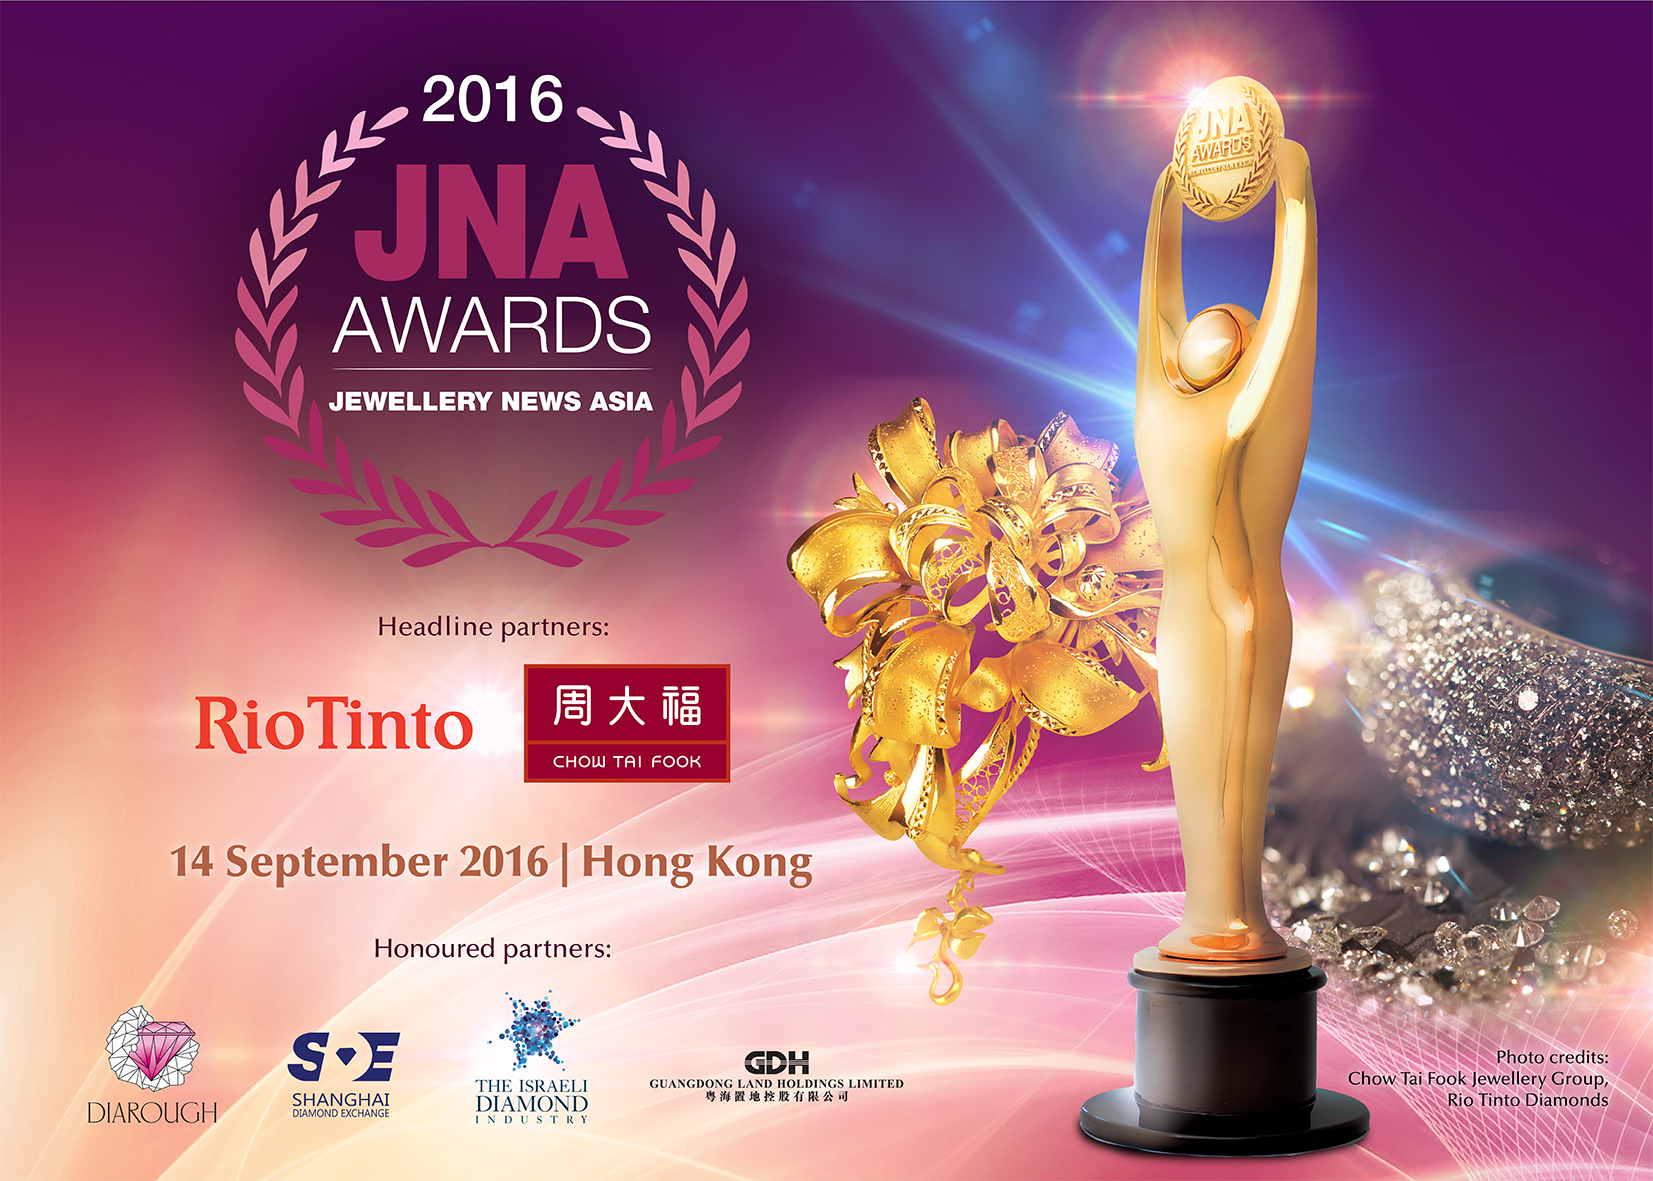 JNA Awards - Premier event for the international jewellery & gemstone industry